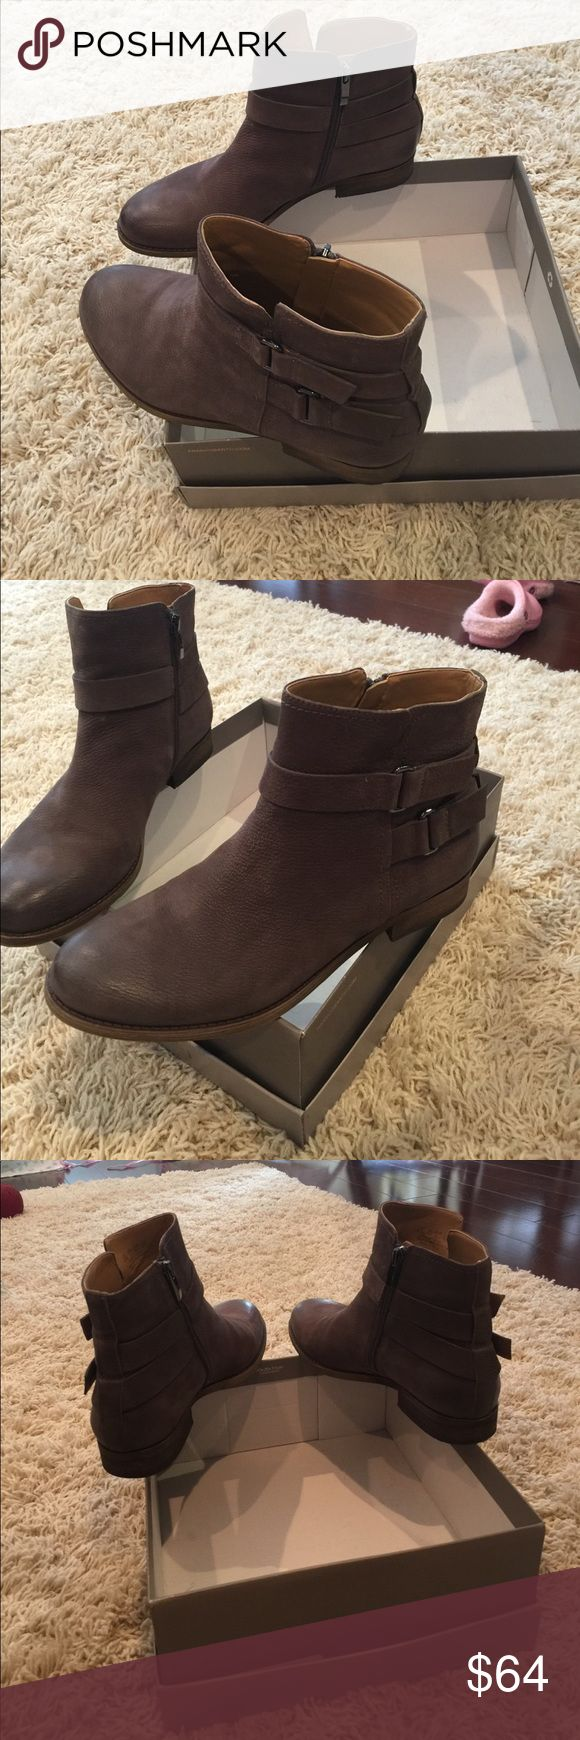 Women's Size9.5 FrancoSarto grey boots Worn only 1 time Franco Sarto grey boots with belt details. Size 9.5. Only worn for 1 hr or so!! New condition. No stains no scuffs Franco Sarto Shoes Ankle Boots & Booties